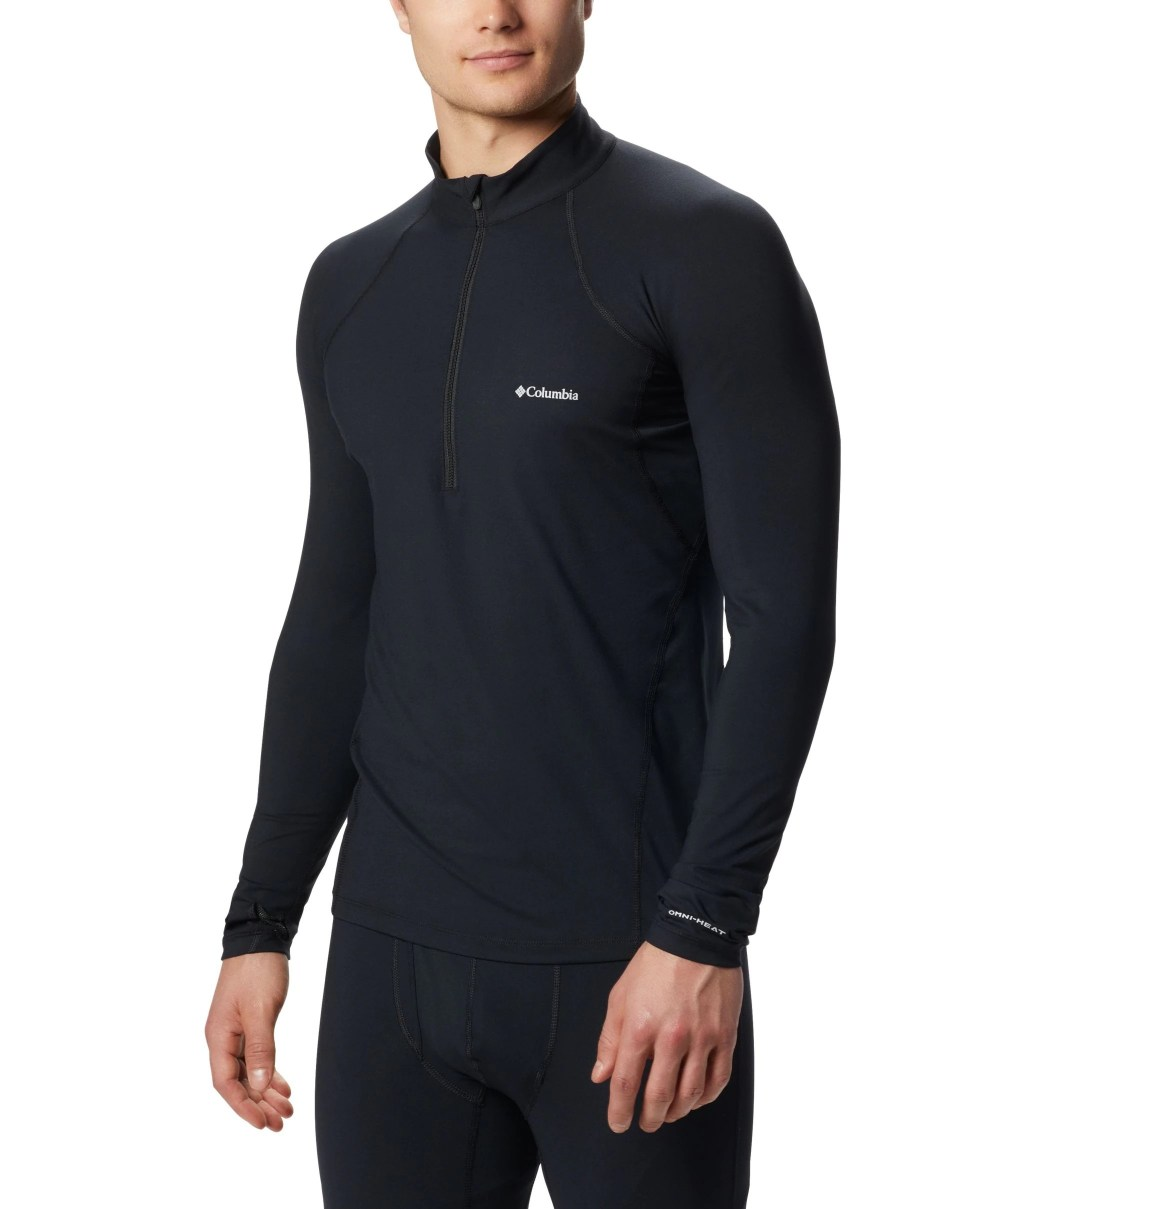 JERSEY MIDWEIGHT STRETCH LONG SLEEVE HALF ZIP FEATURES Omni-HEAT™ Omni-WICK™ FABRICS 85% polyester / 15% elastane BLACK